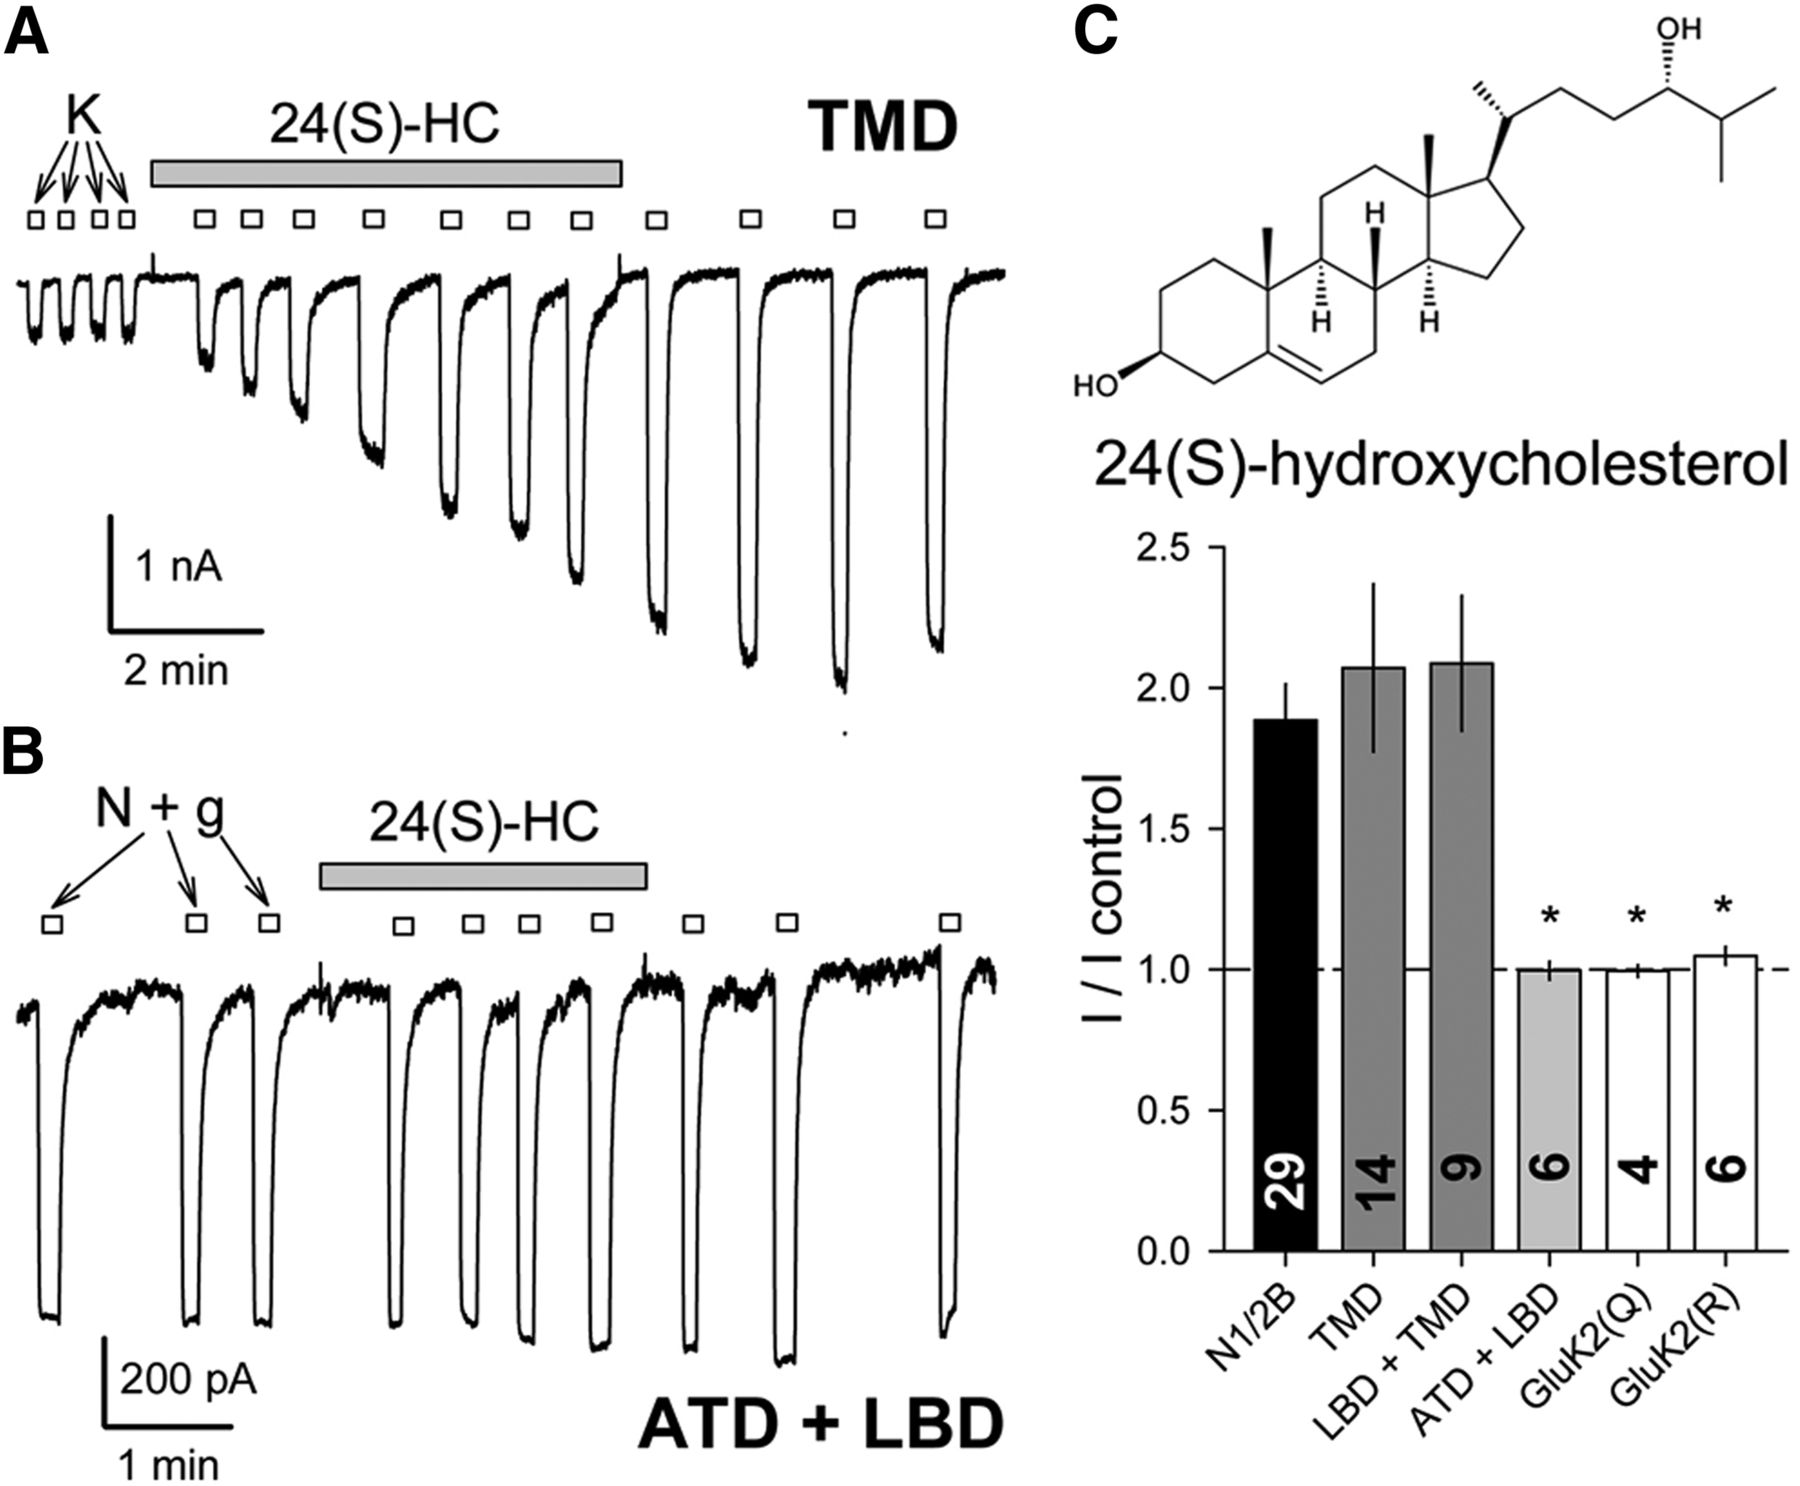 Chimeric Glutamate Receptor Subunits Reveal The Transmembrane Domain Is Sufficient For Nmda Receptor Pore Properties